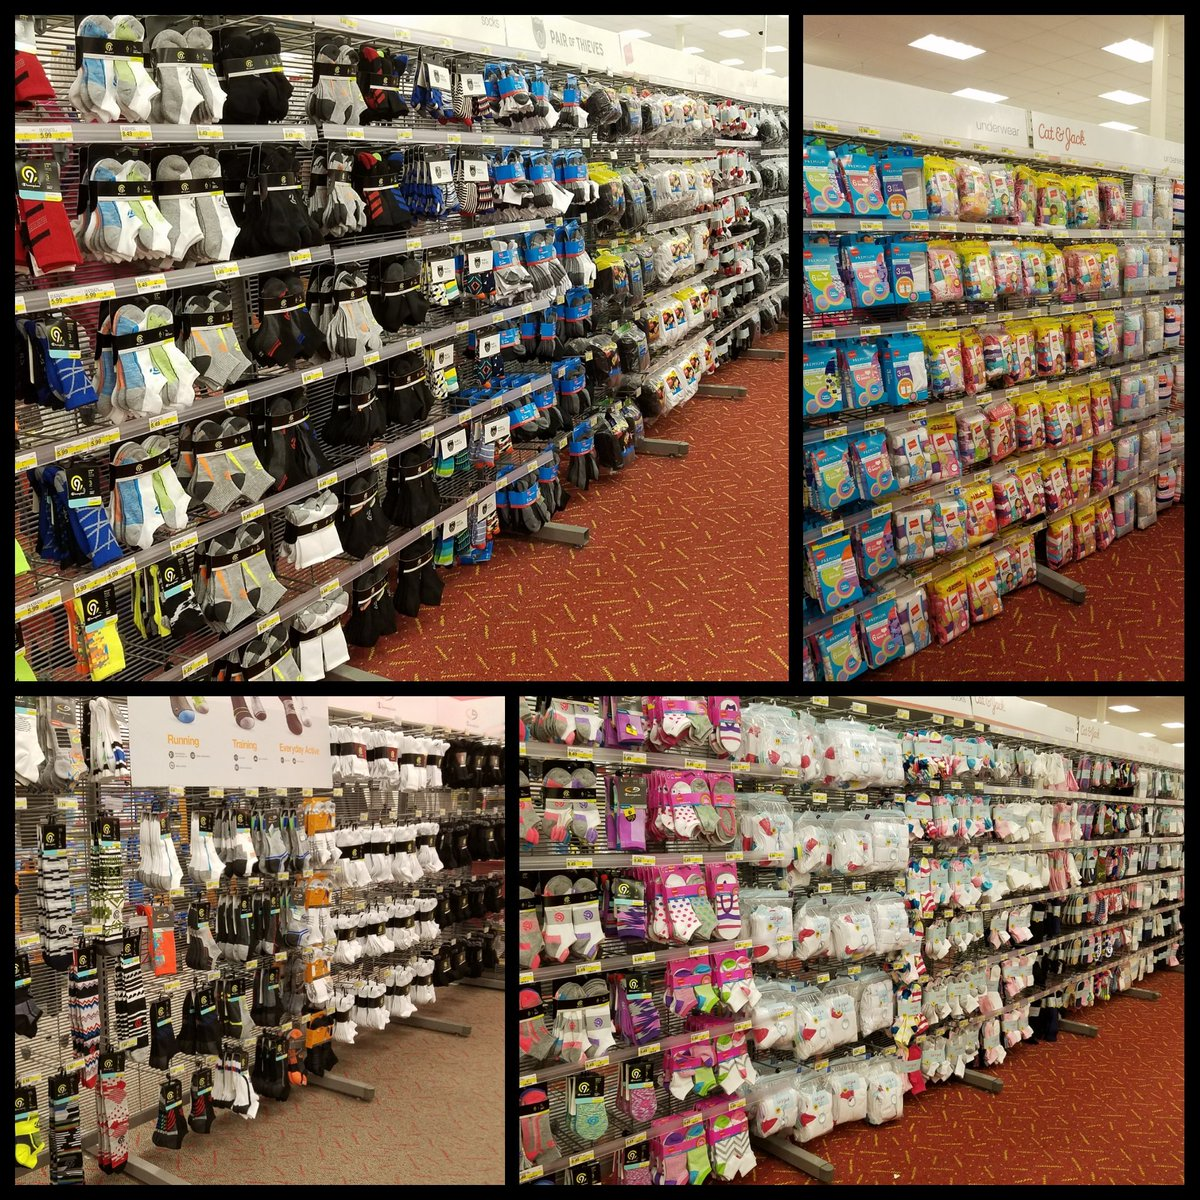 #T2320ModelStore is getting #BacktoBASICS !! #KnowYourBusiness #cantstopwontstop <br>http://pic.twitter.com/KZ56deXrpm